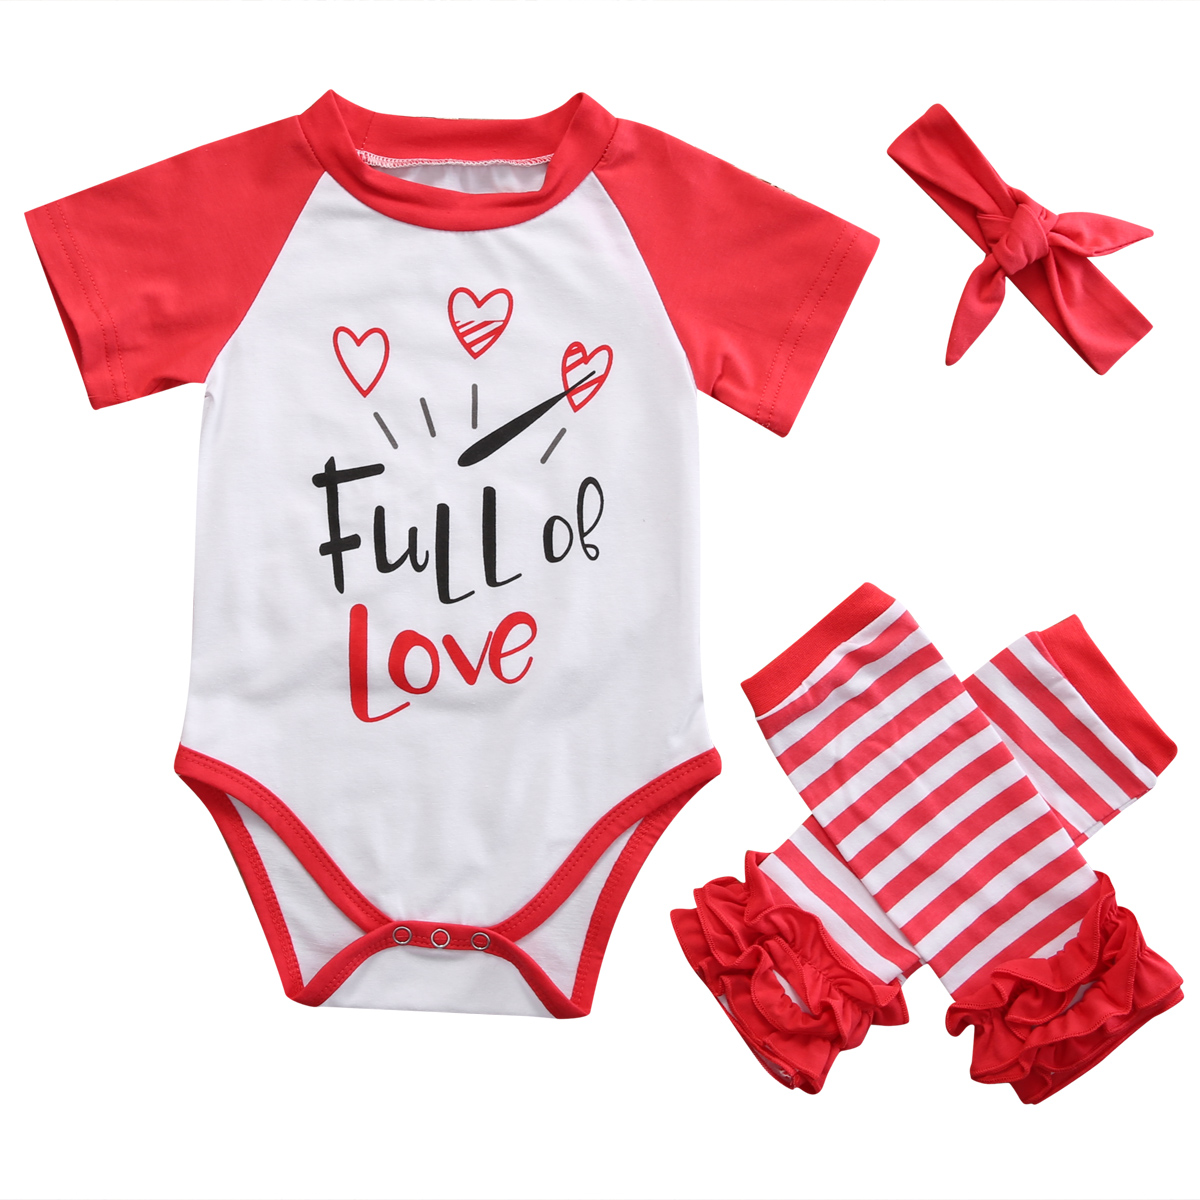 3pcs sets Infant Toddler Kids Baby Girl Clothes Short Sleeve T-shirts Romper+Leg Warmers+Headband Newborn Summer Cotton Sunsuits